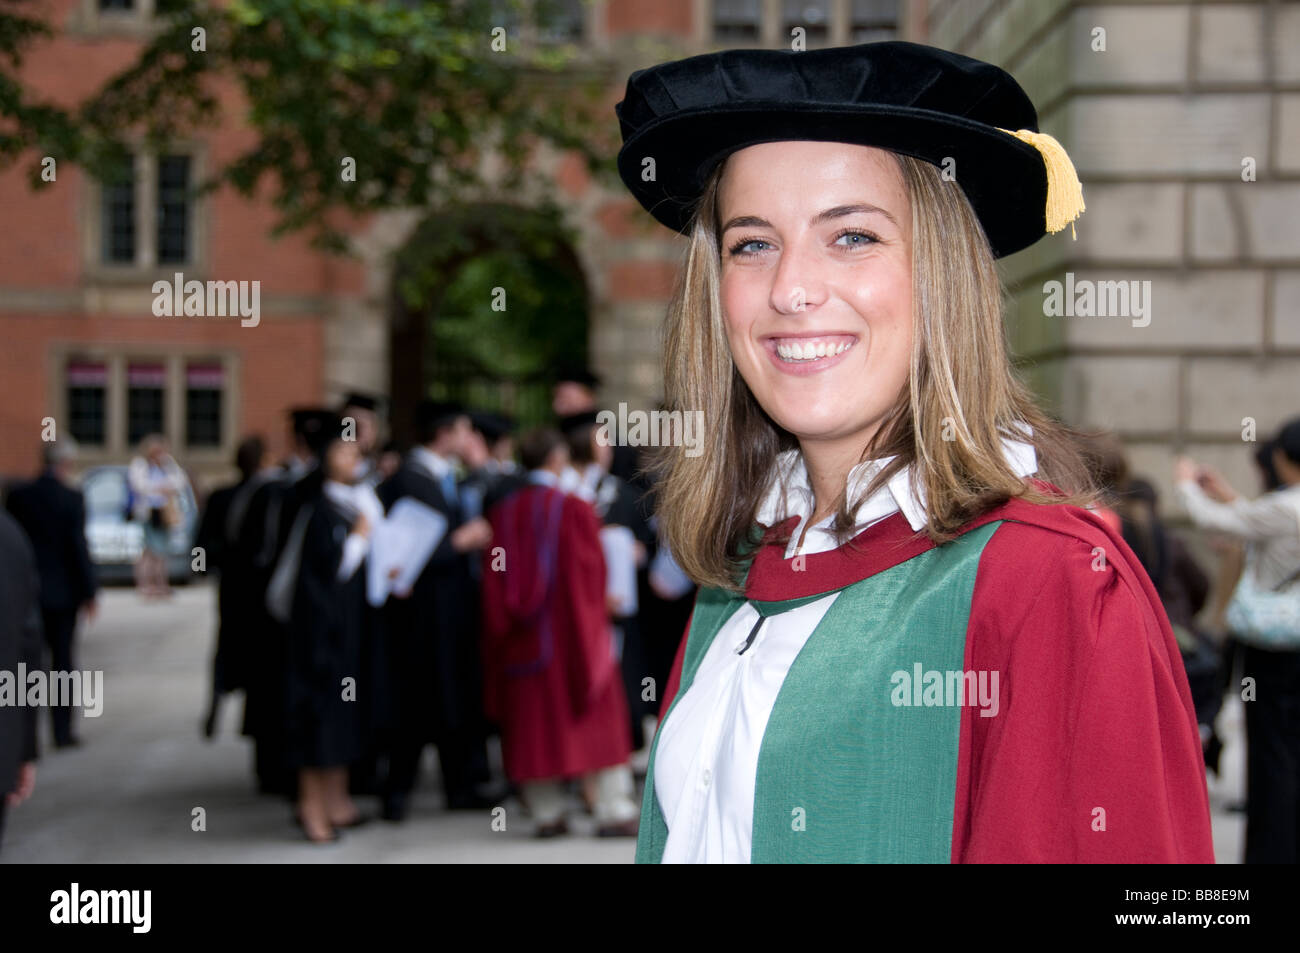 Fantastic Doctoral Gowns By University Pictures - Wedding and ...